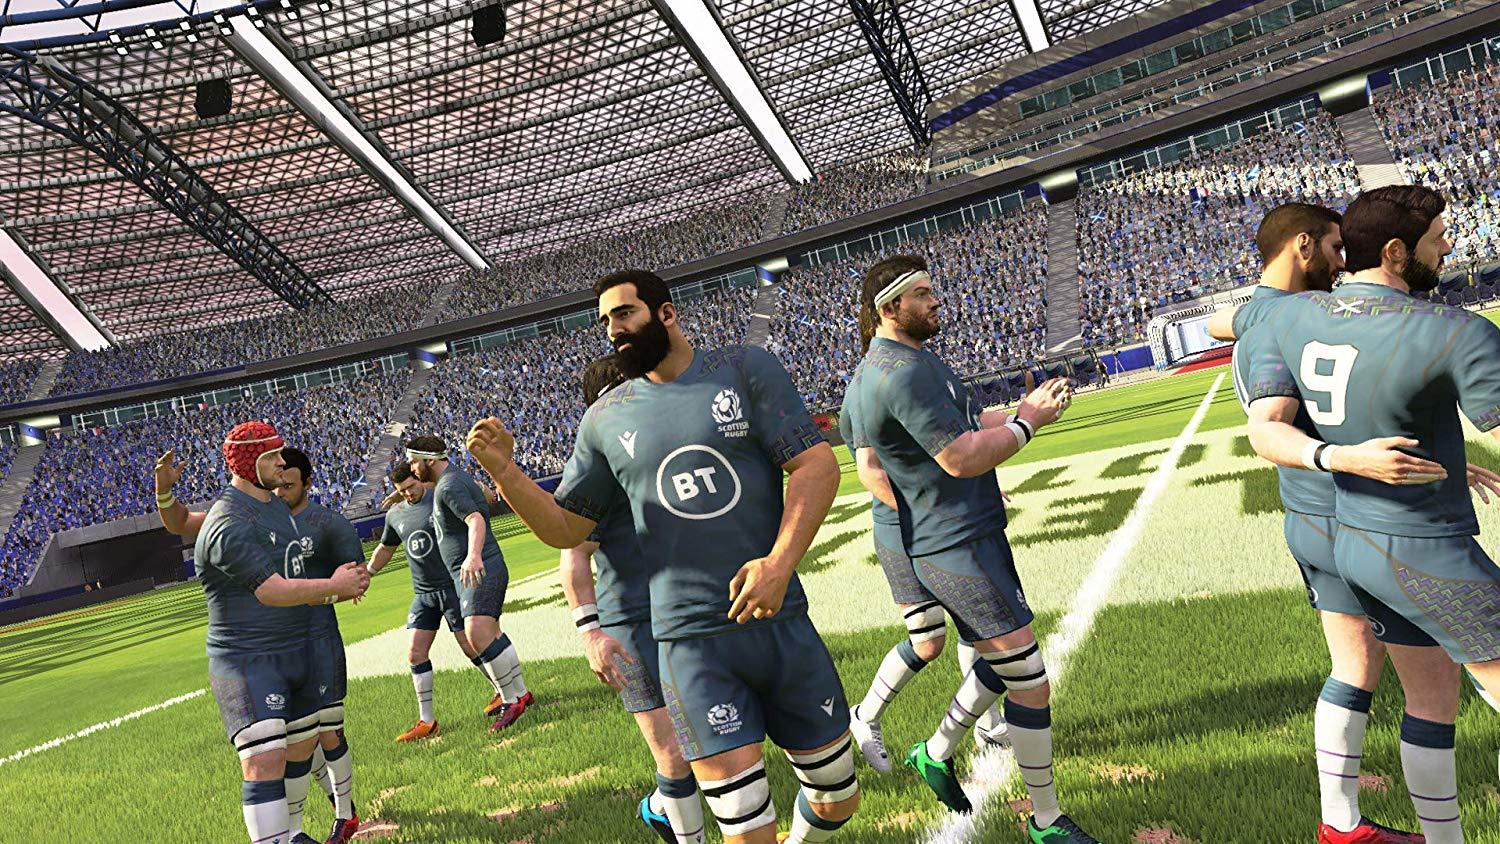 Rugby 20 - PS4